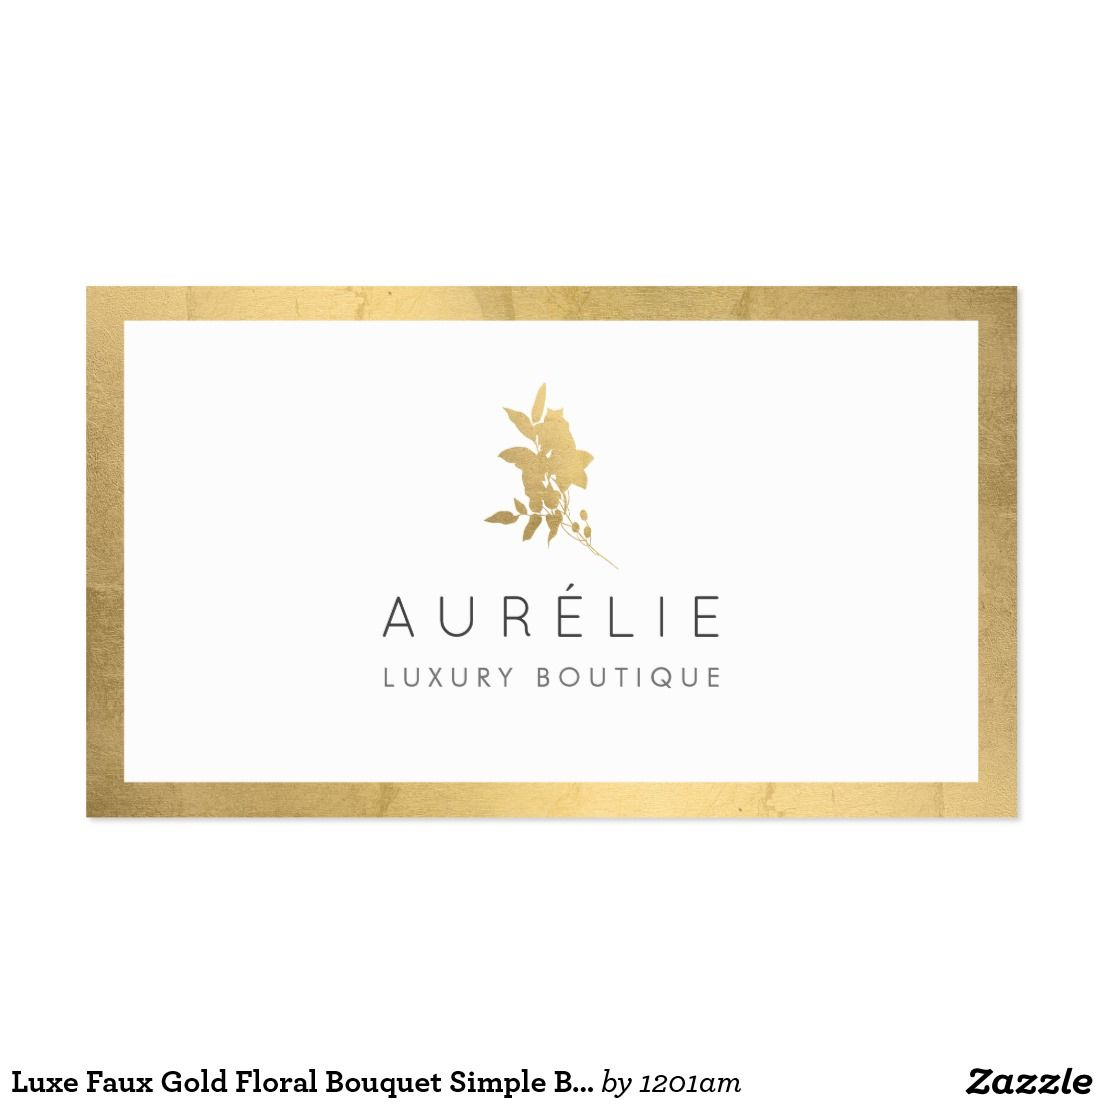 Luxe Faux Gold Floral Bouquet Customizable Business Card for ...